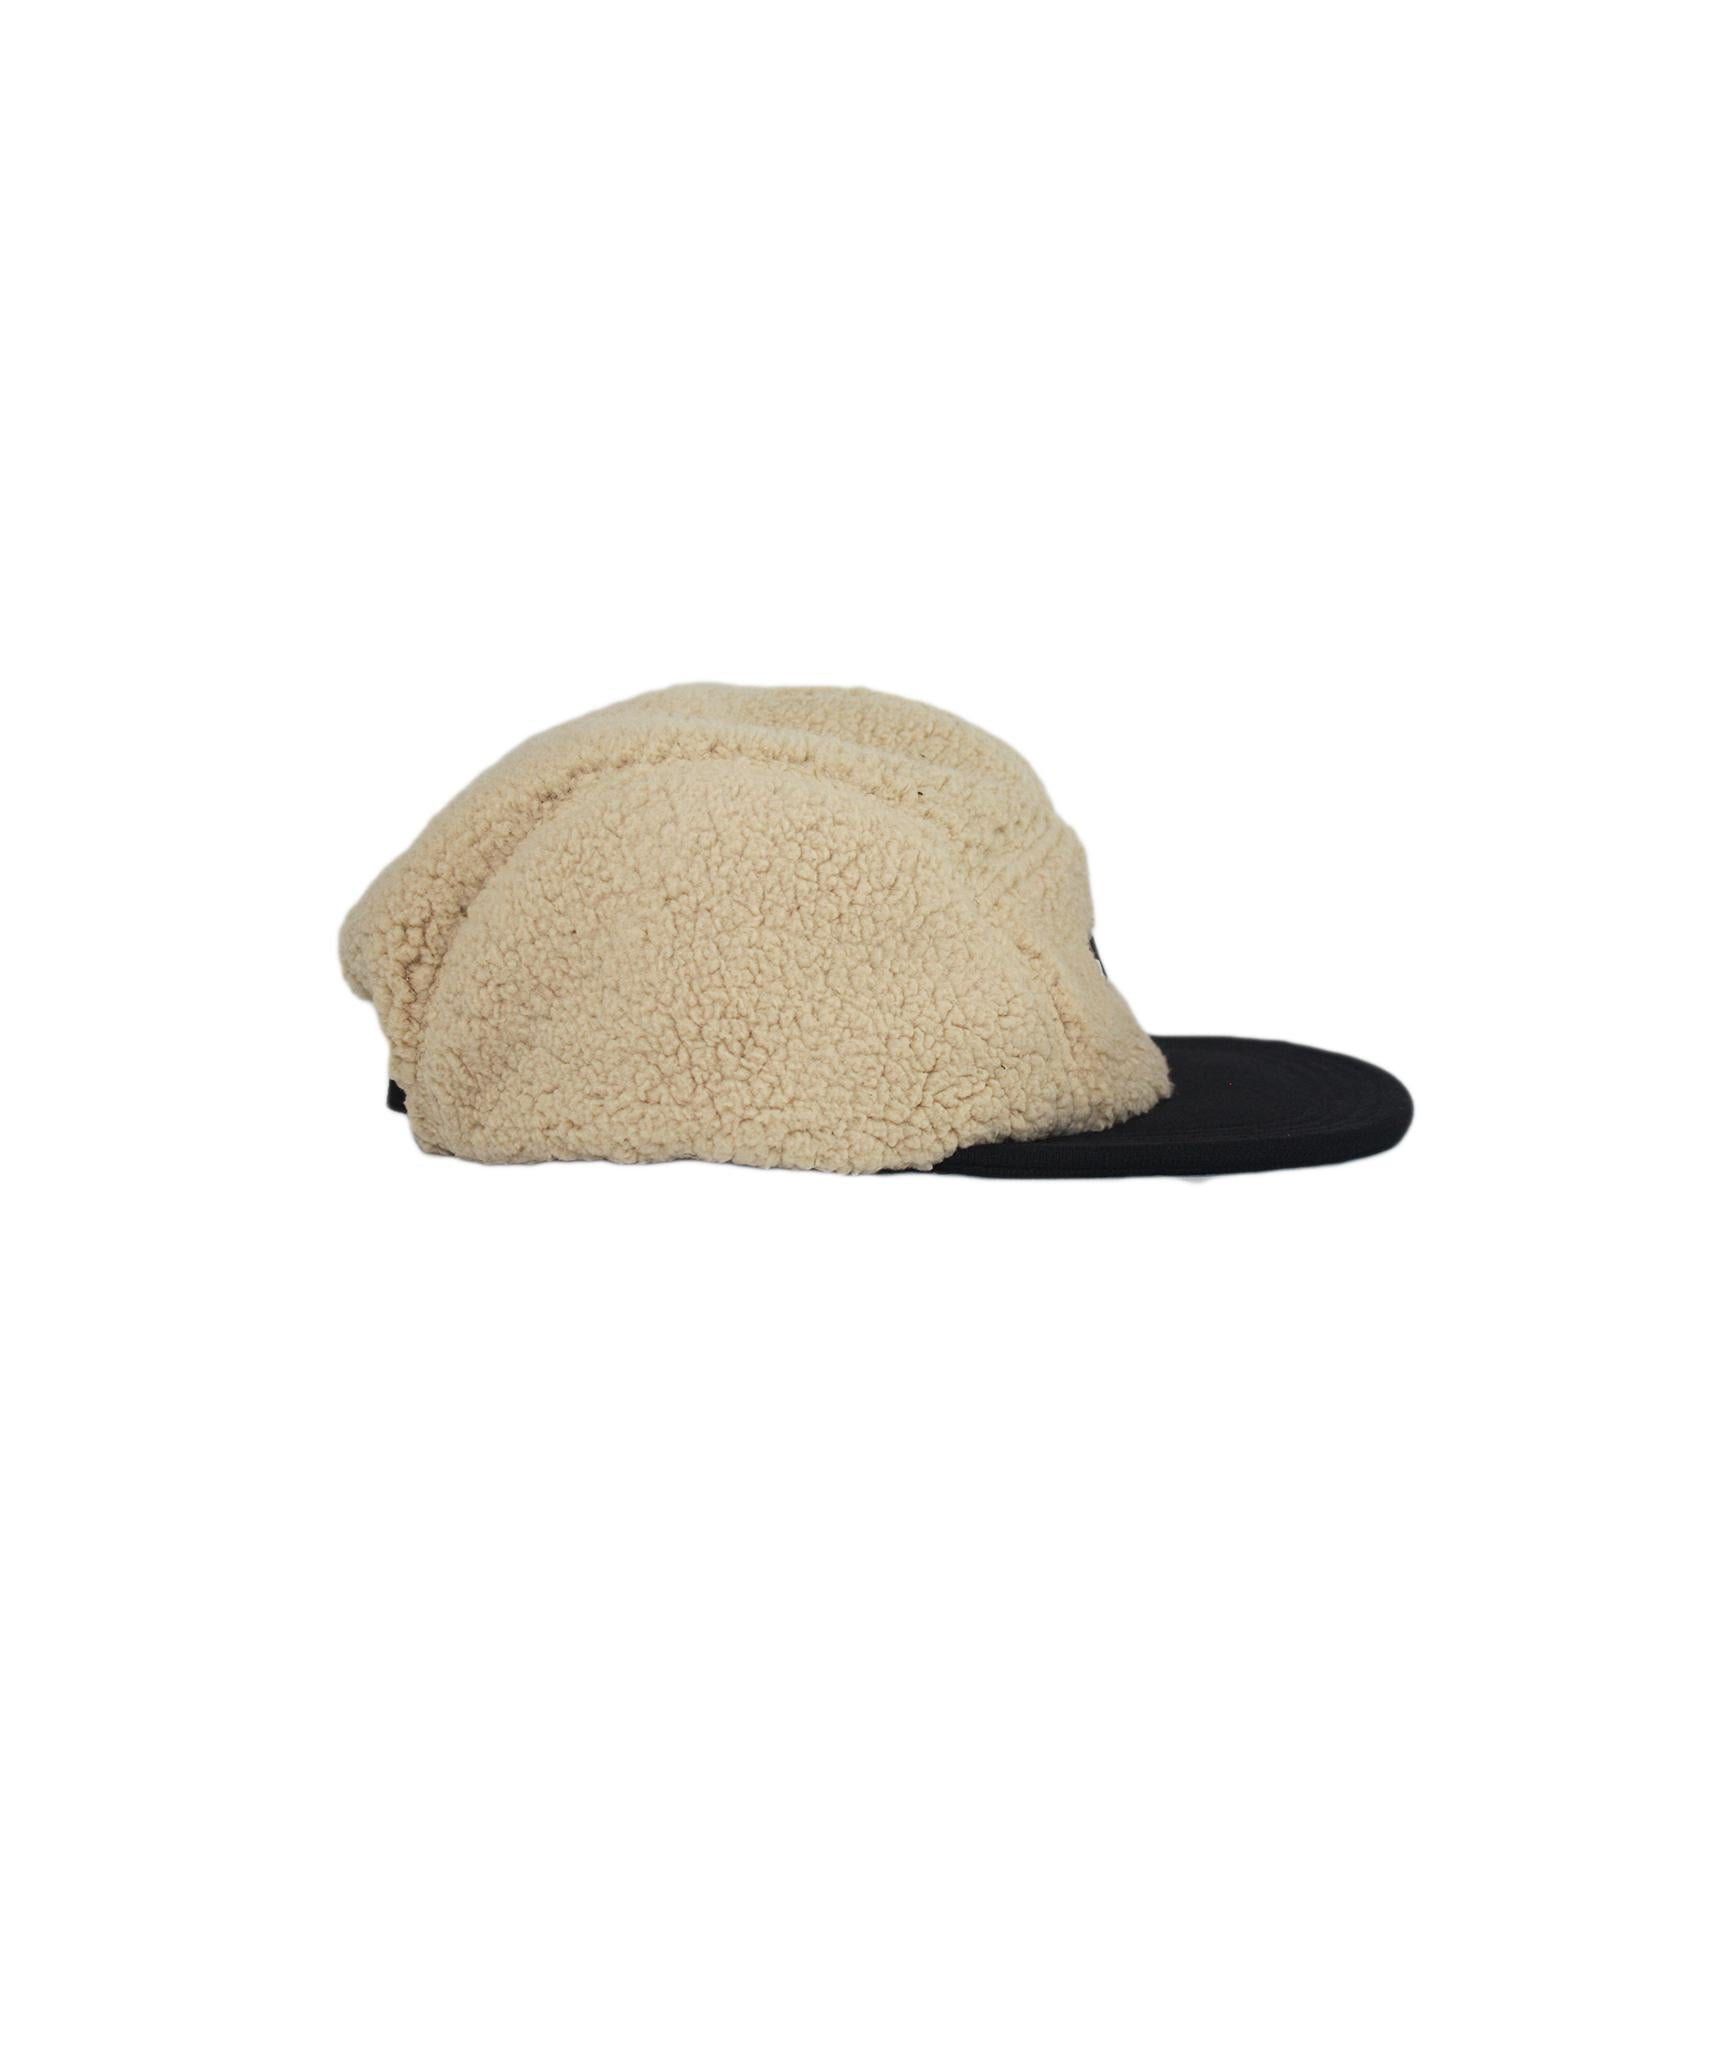 Alife Upcycle Hat - Sherpa Jacket - Natural